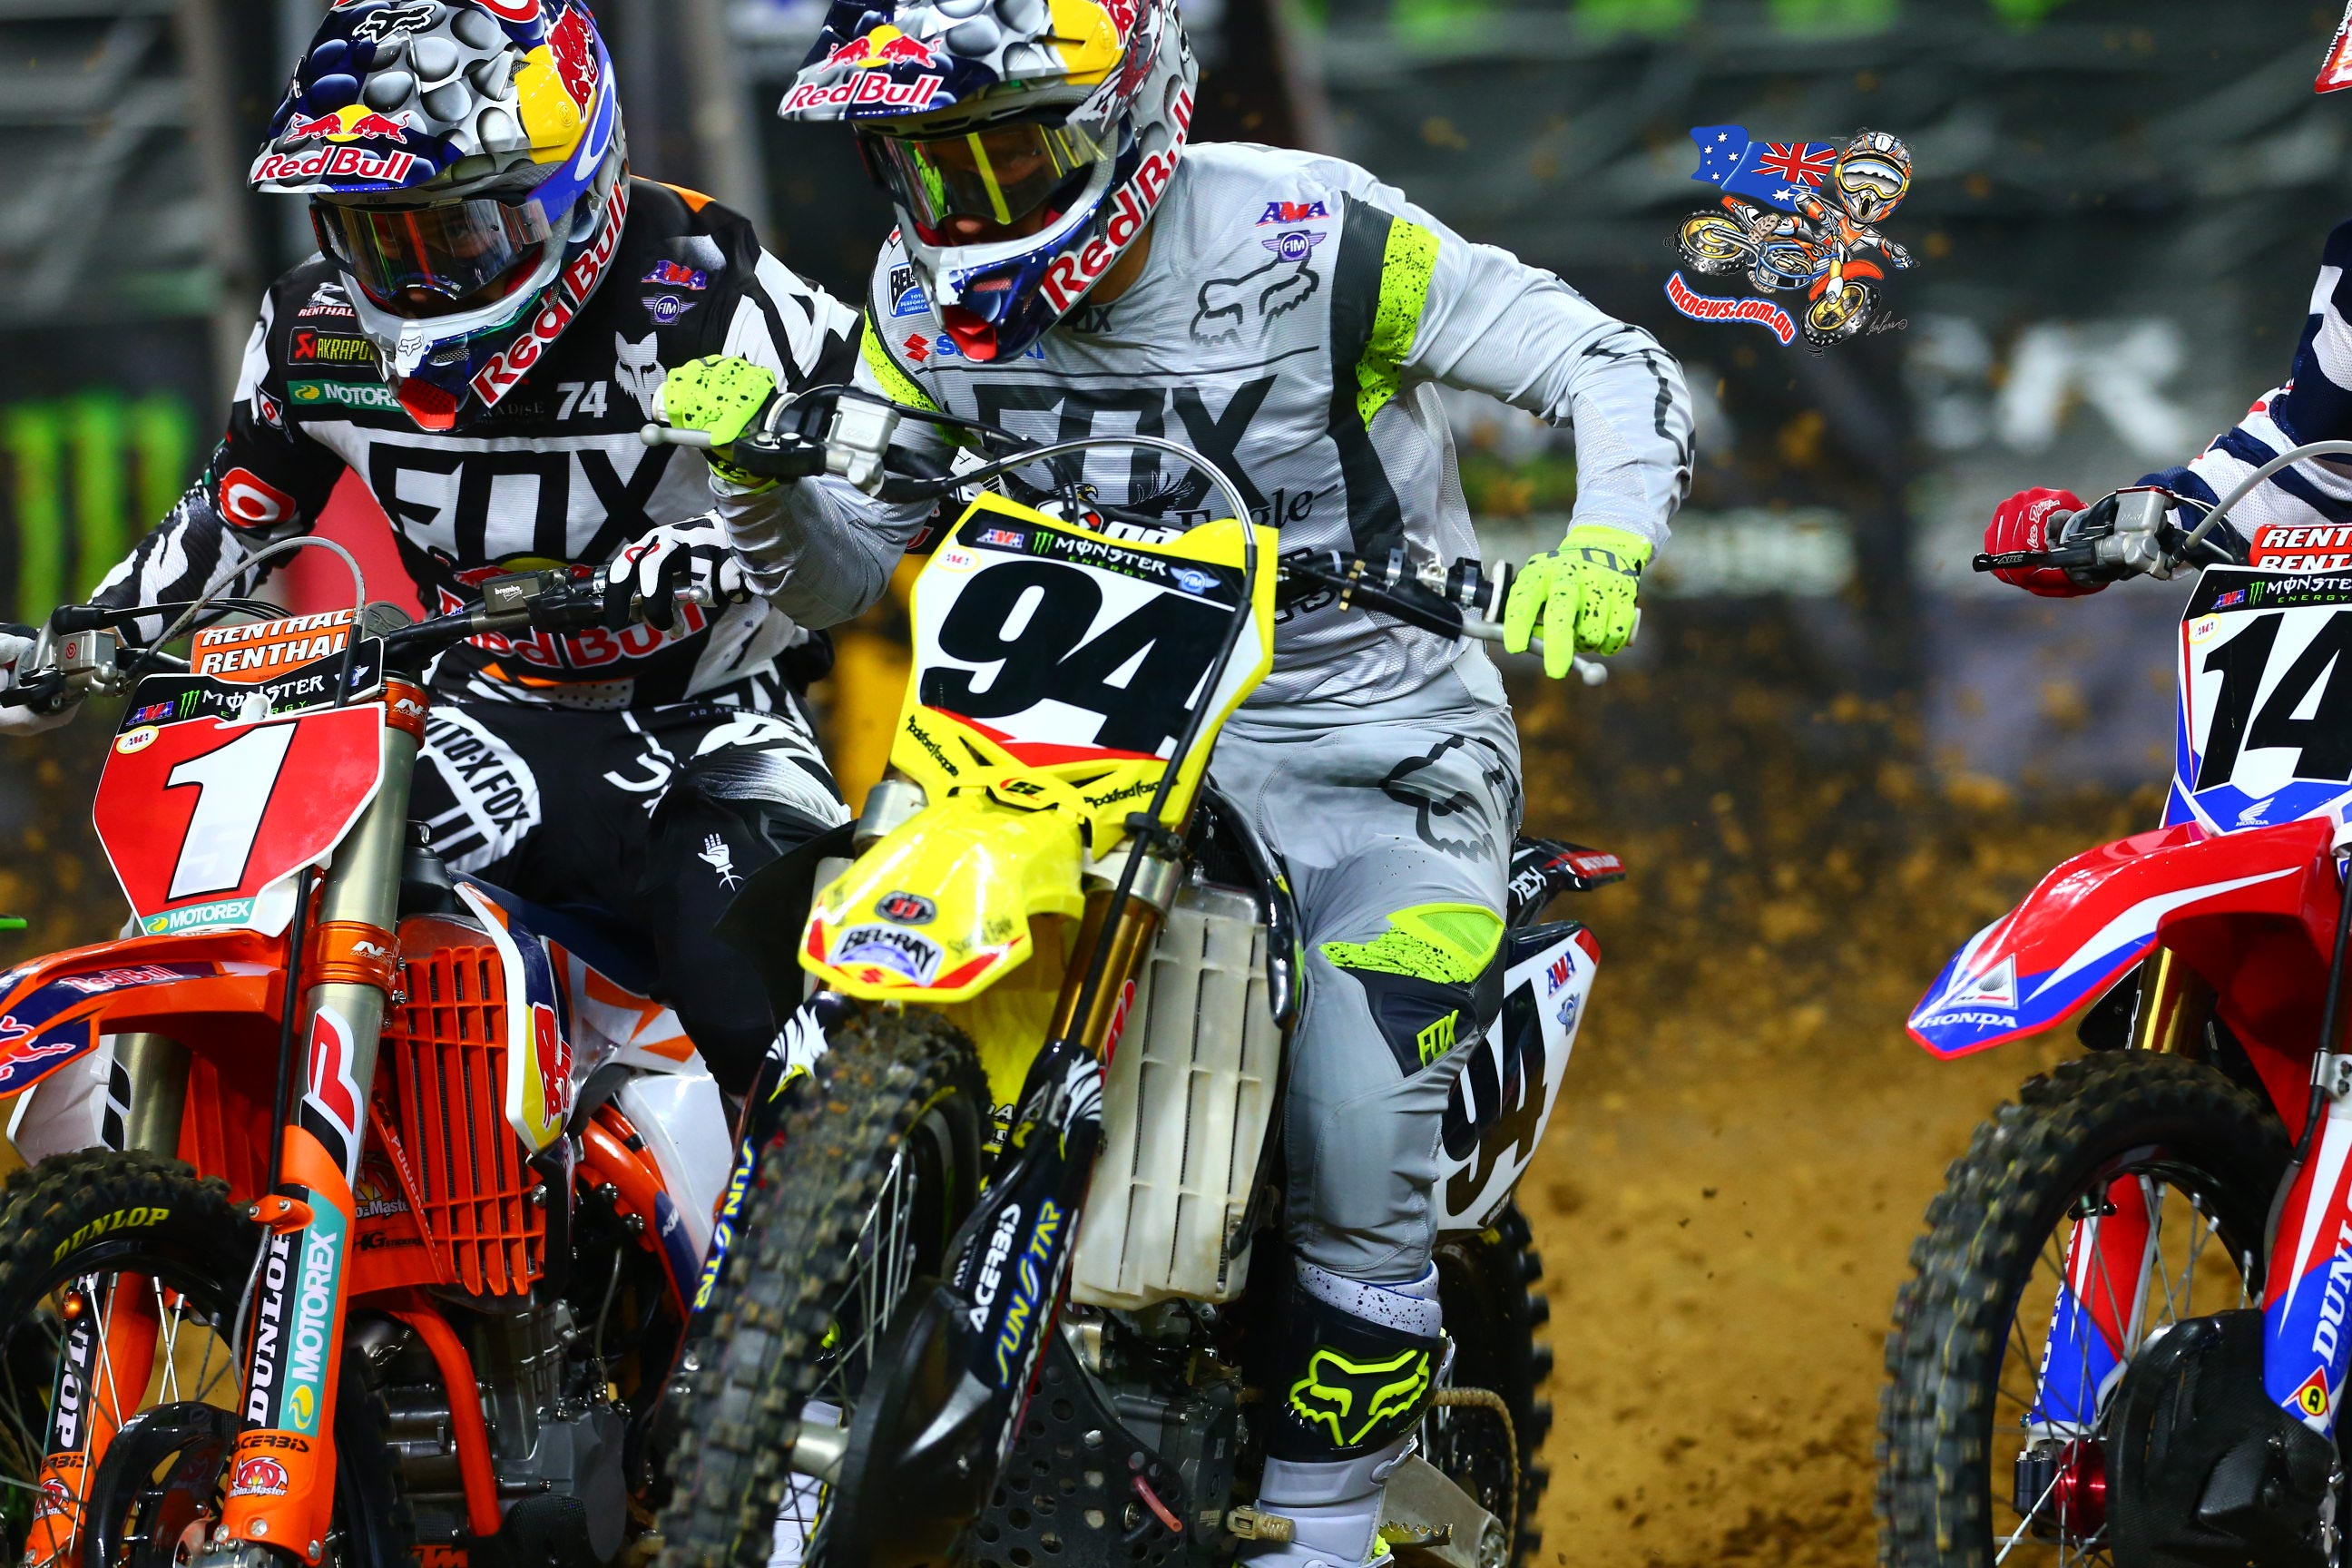 AMA SX 2016 - Round Seven - Arlington - Ryan Dungey and Ken Roczen - Image by Hoppenworld